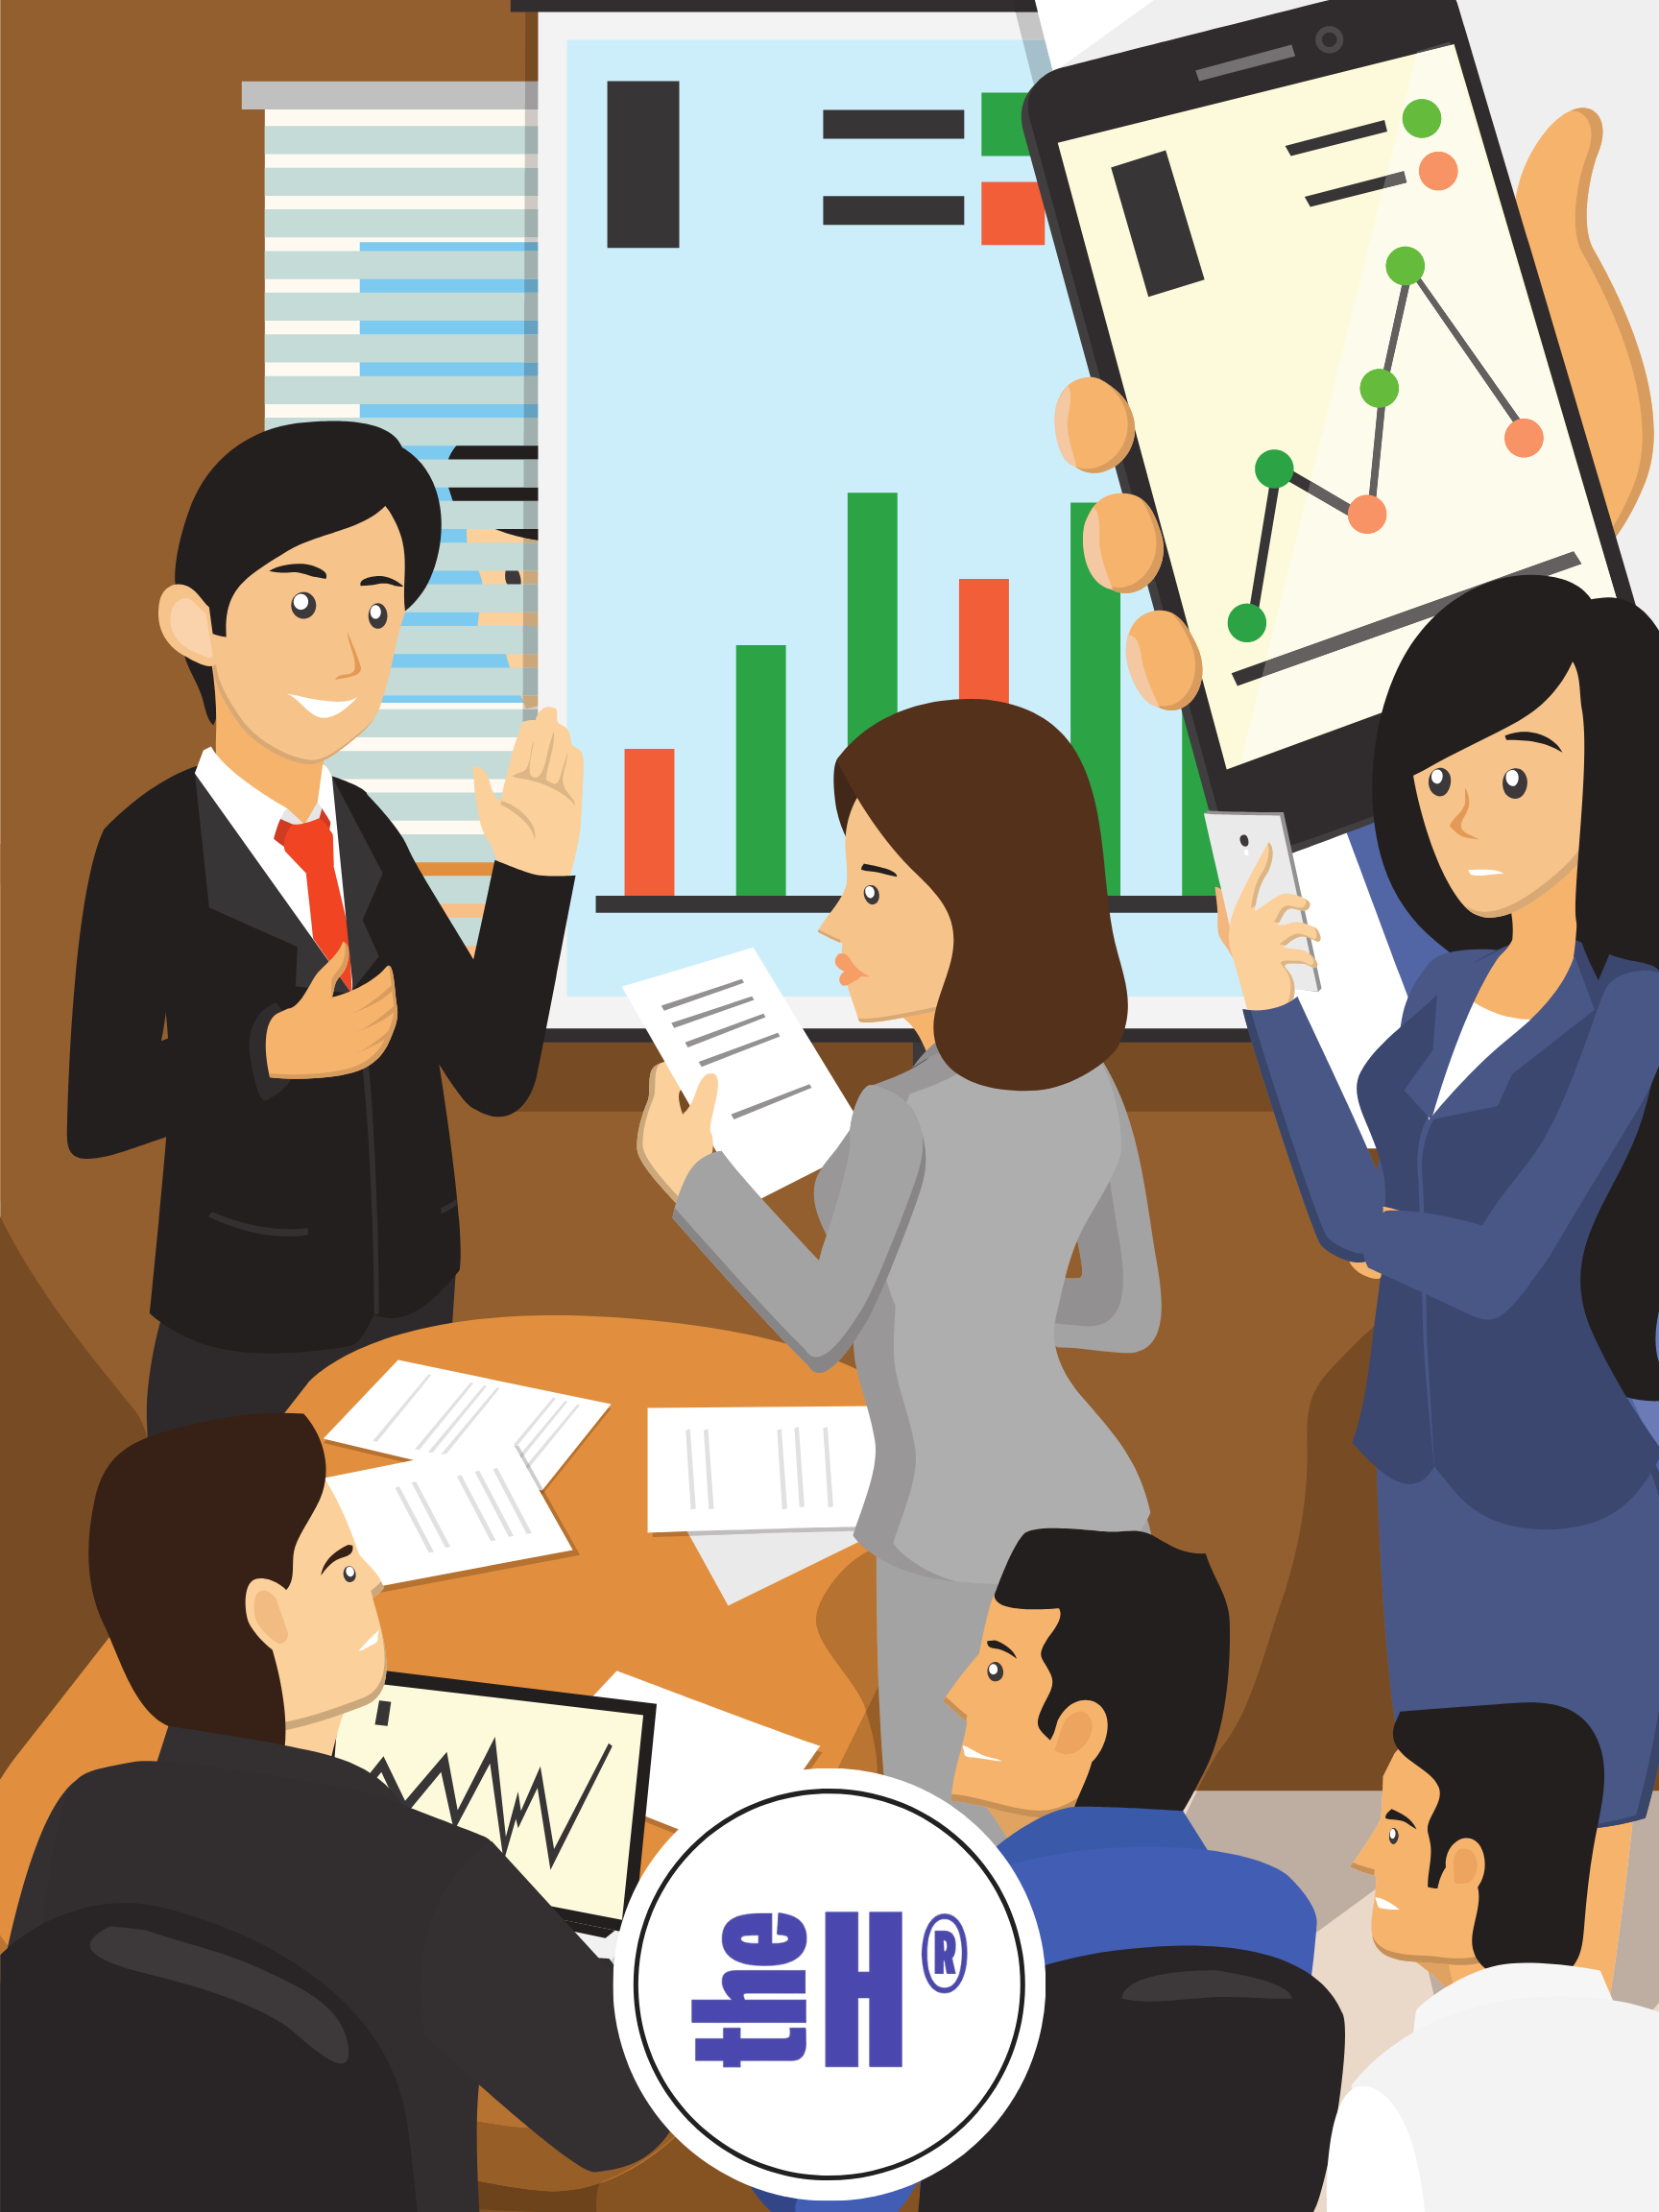 Survey: How COVID-19 affected your business?